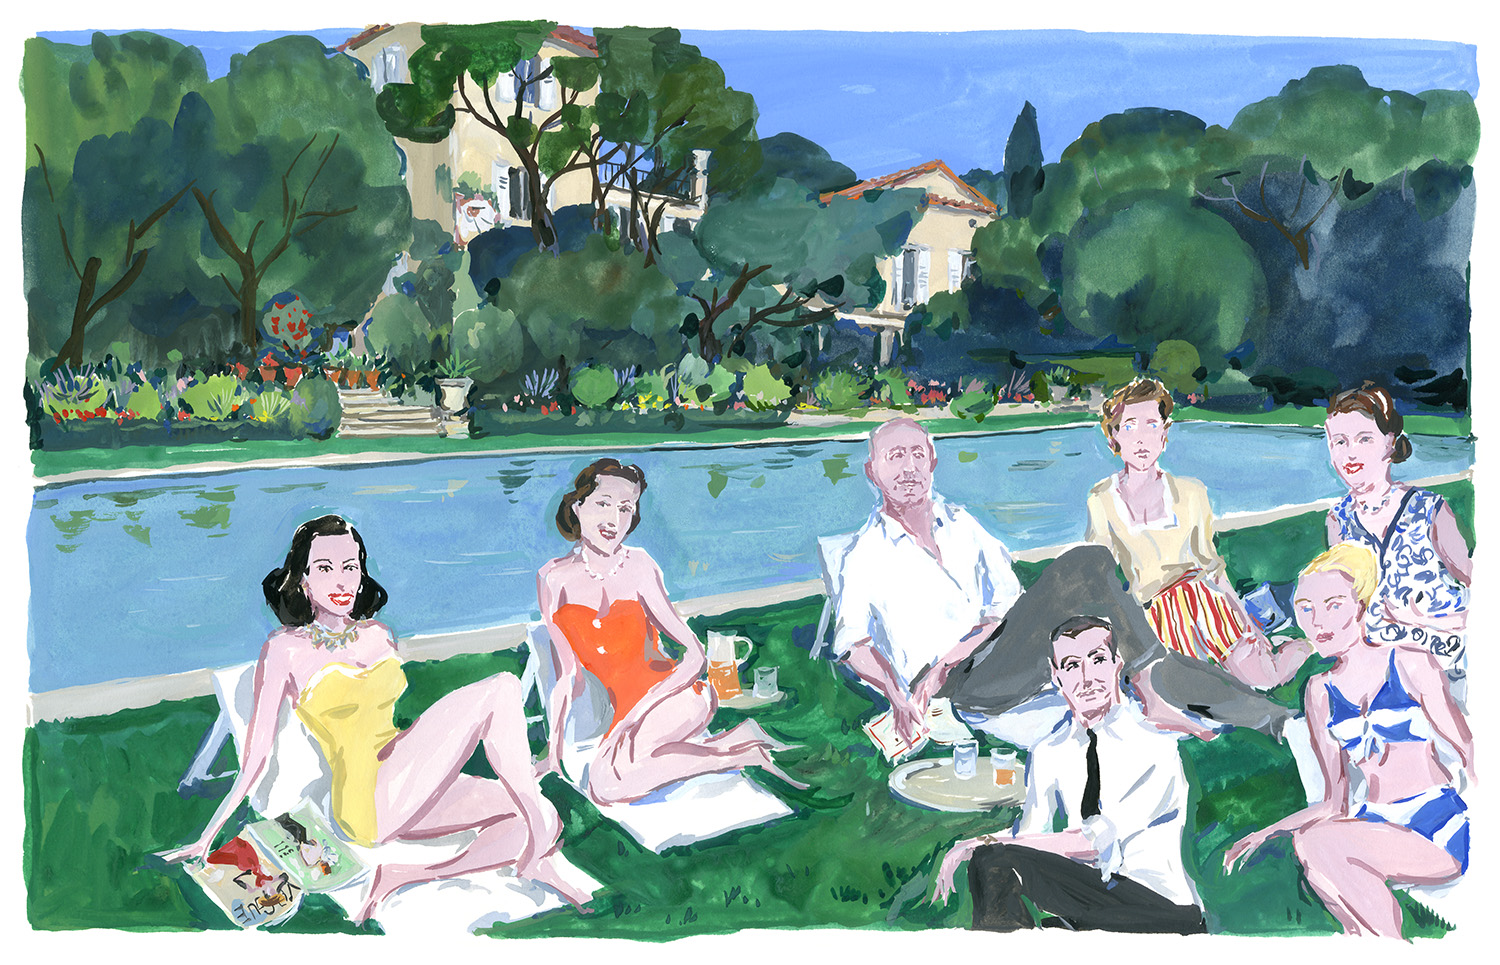 Christian Dior and friends at La Colle Noire. hristian Dior in the South, published by Rizzoli NY.